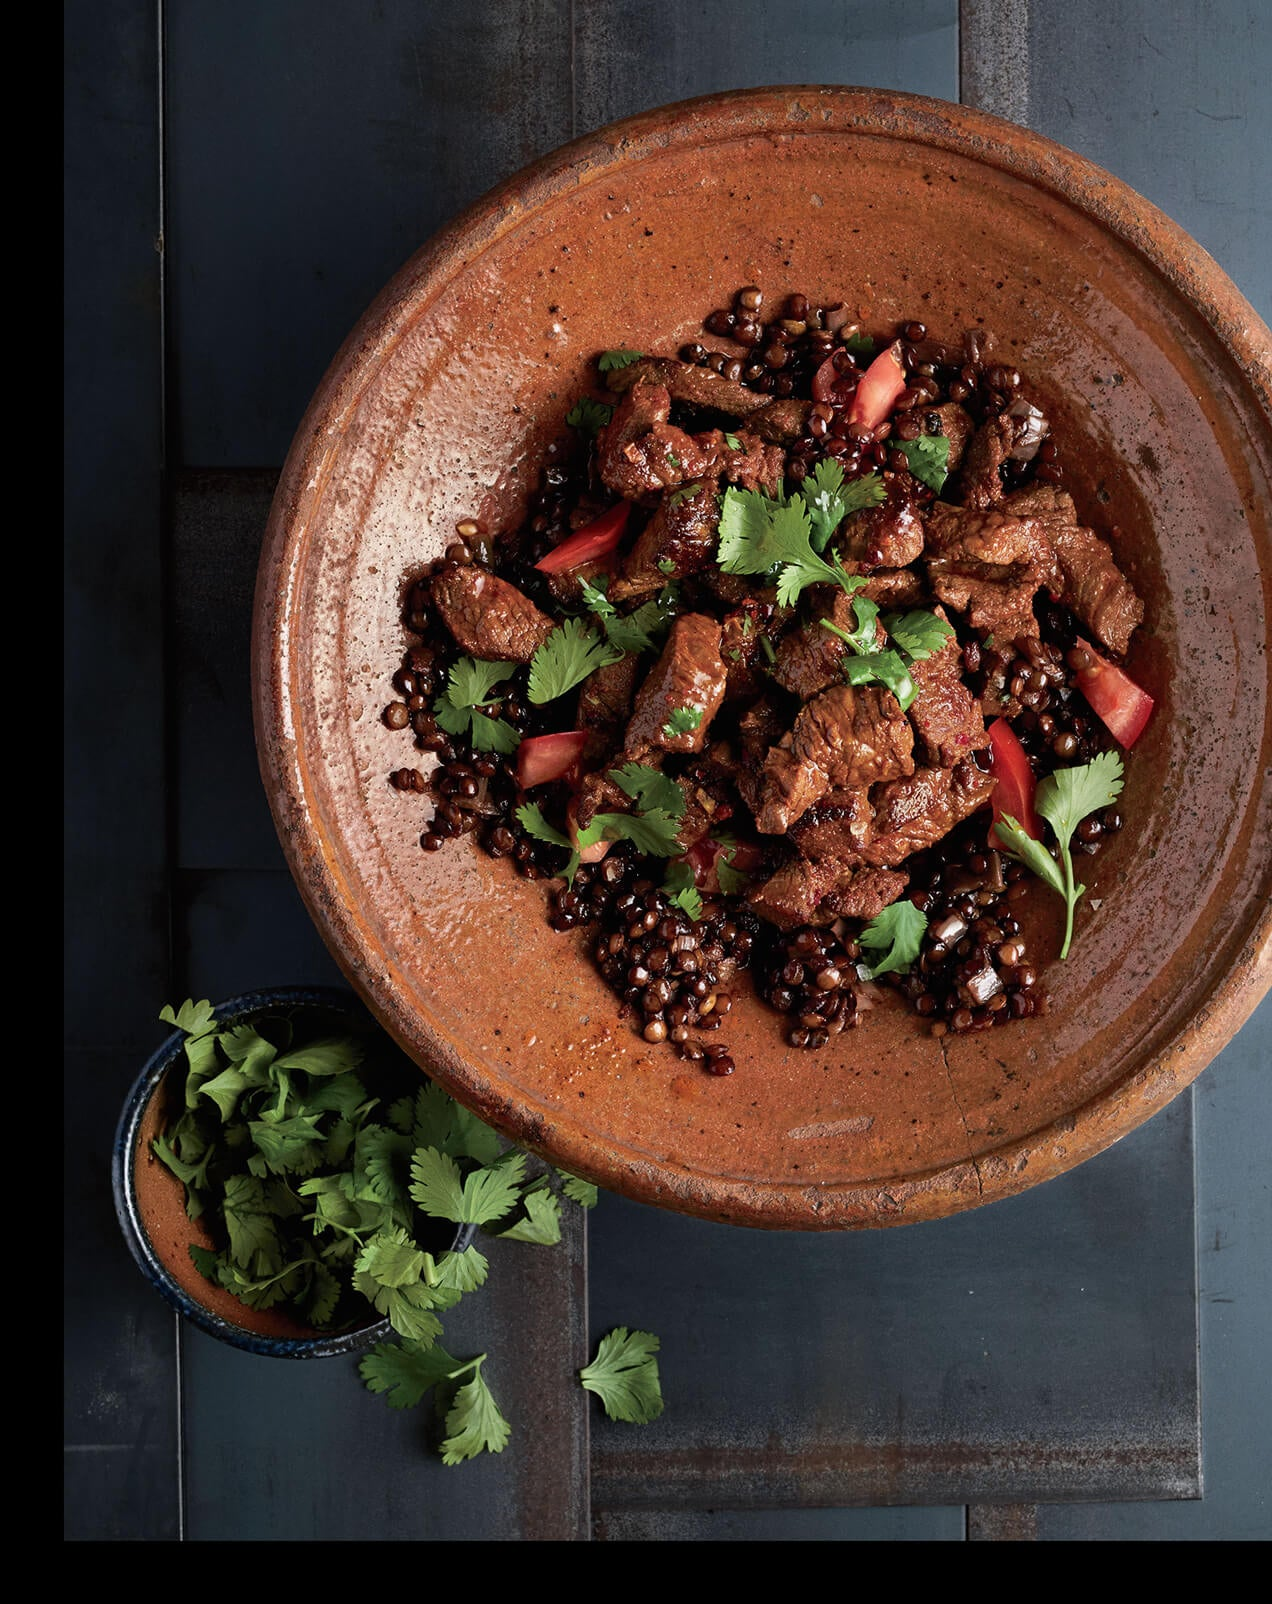 //cdn.shopify.com/s/files/1/0859/6096/files/Middle-Eastern-Beef-with-Lentils.jpg?v=1513015665